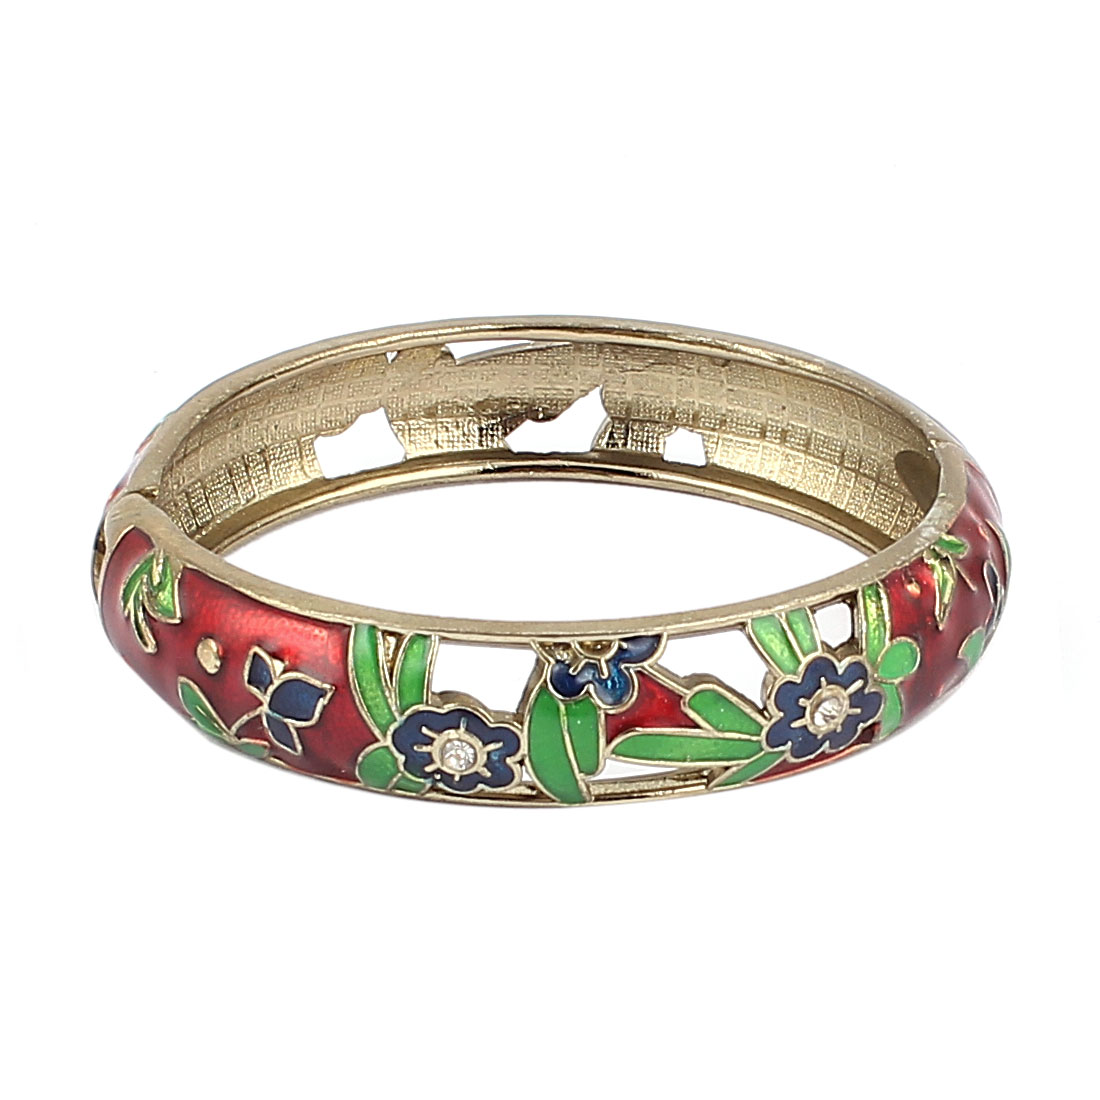 Woman Lady Spring Hinged Floral Carved Enamel Cuff Bracelet Bangle Wristband Red